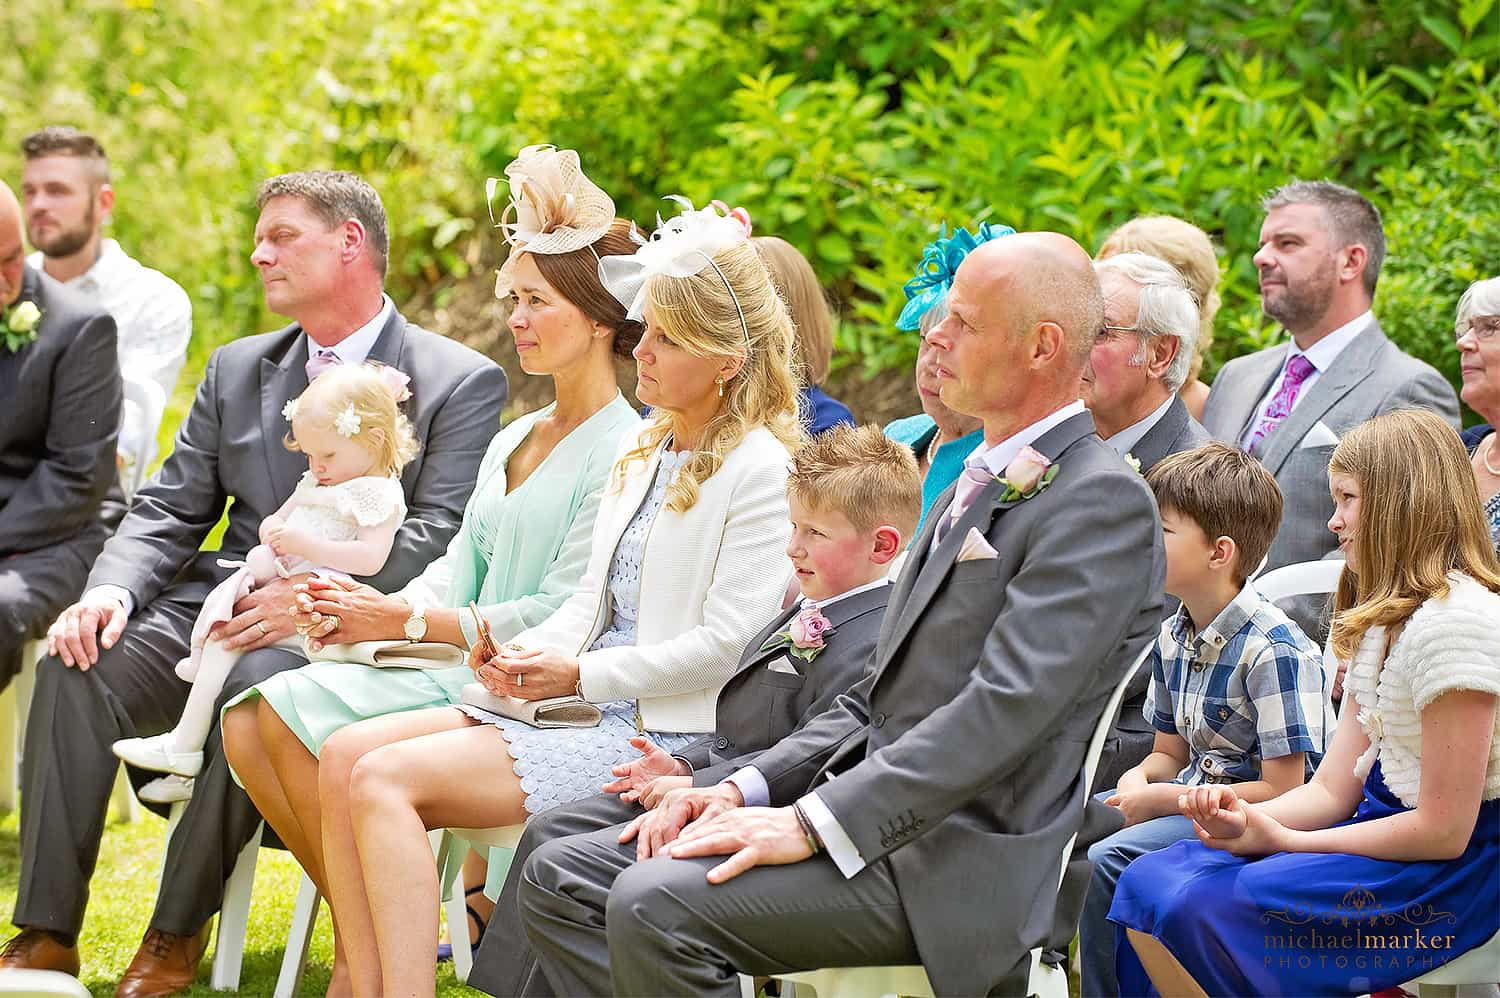 Guests watching a summer outdoor wedding ceremony at Langdon court